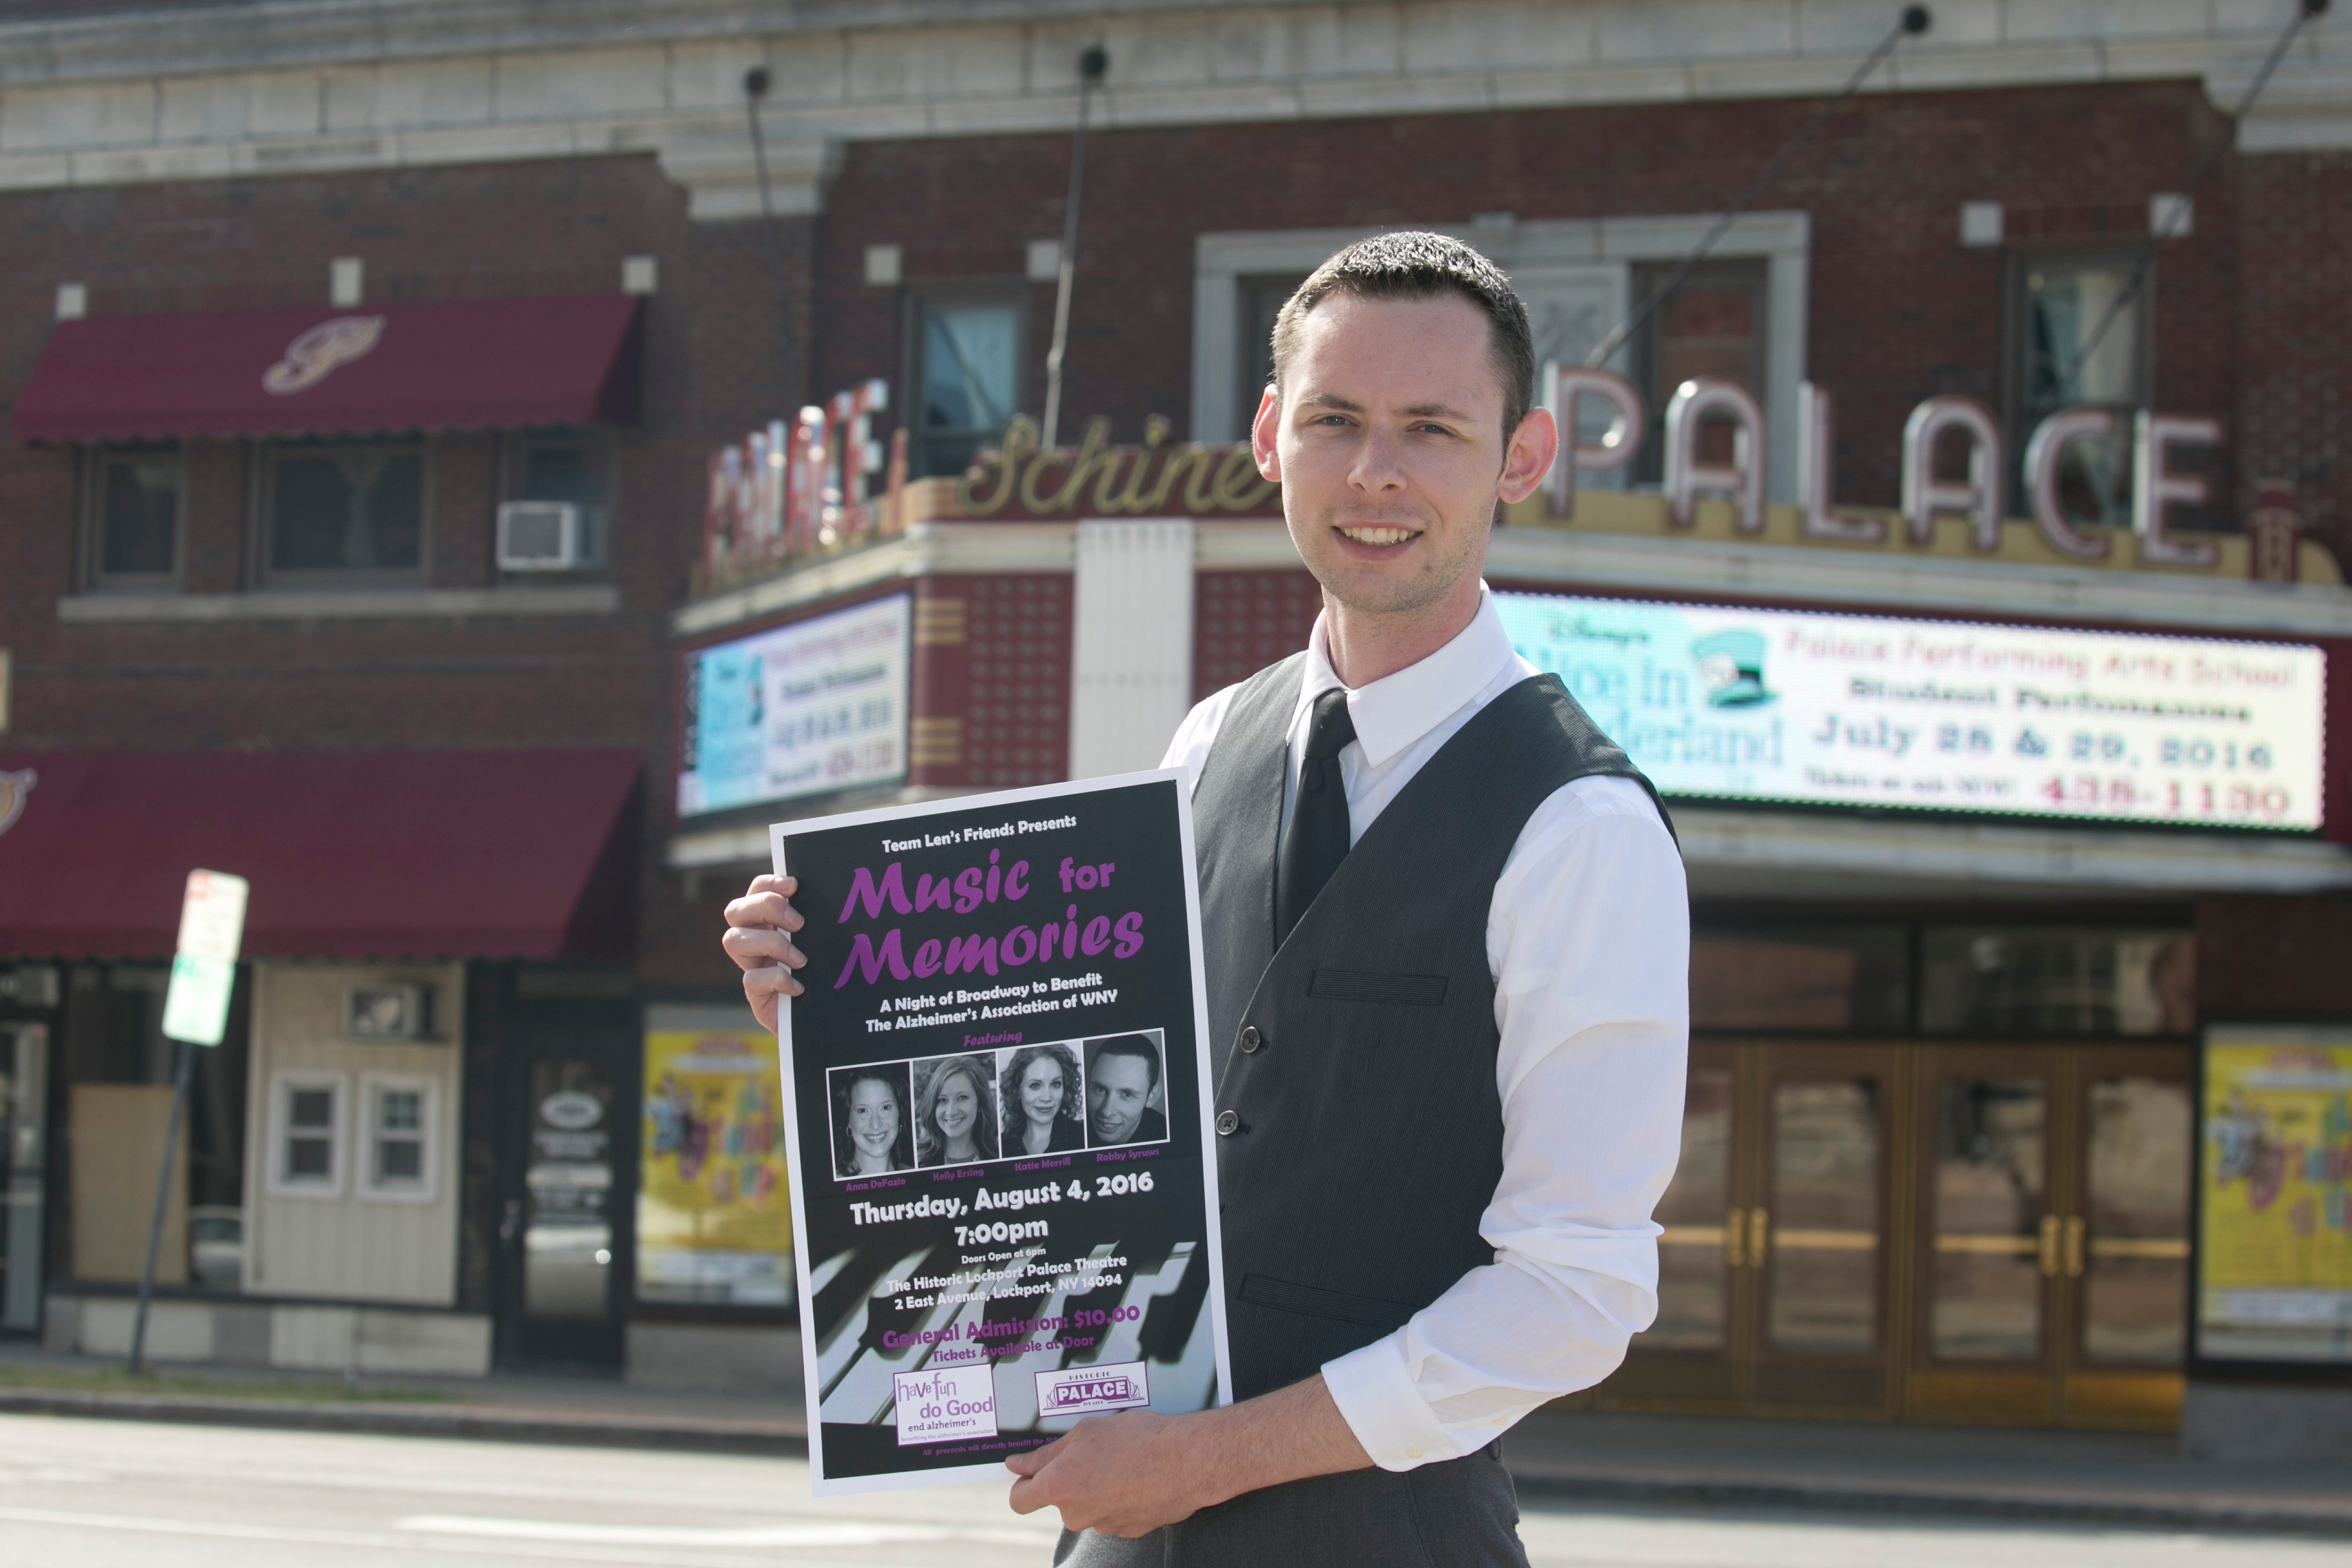 In honor of his grandfather, Robby Syruws will perform at the Palace Theatre with three friends on August 4.